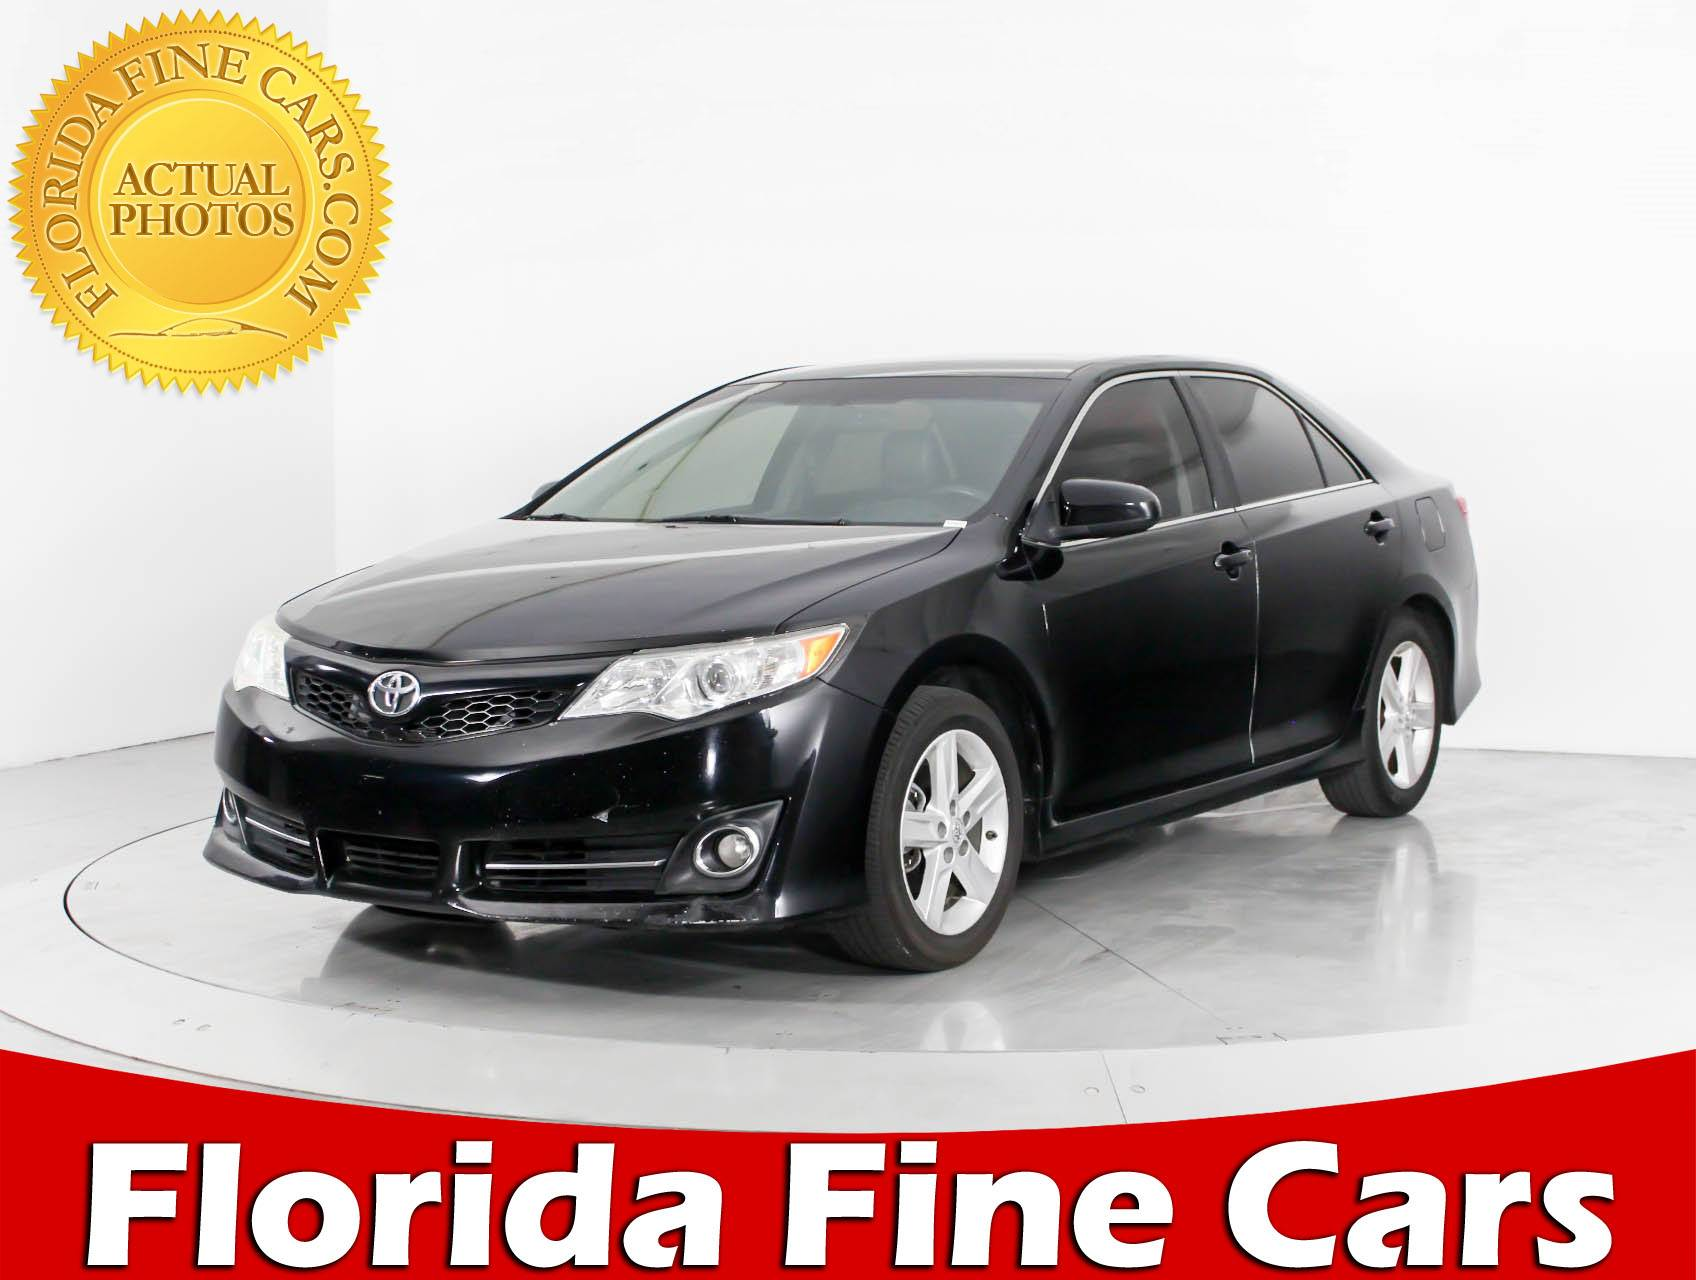 Used 2013 TOYOTA CAMRY Se Sedan for sale in WEST PALM FL